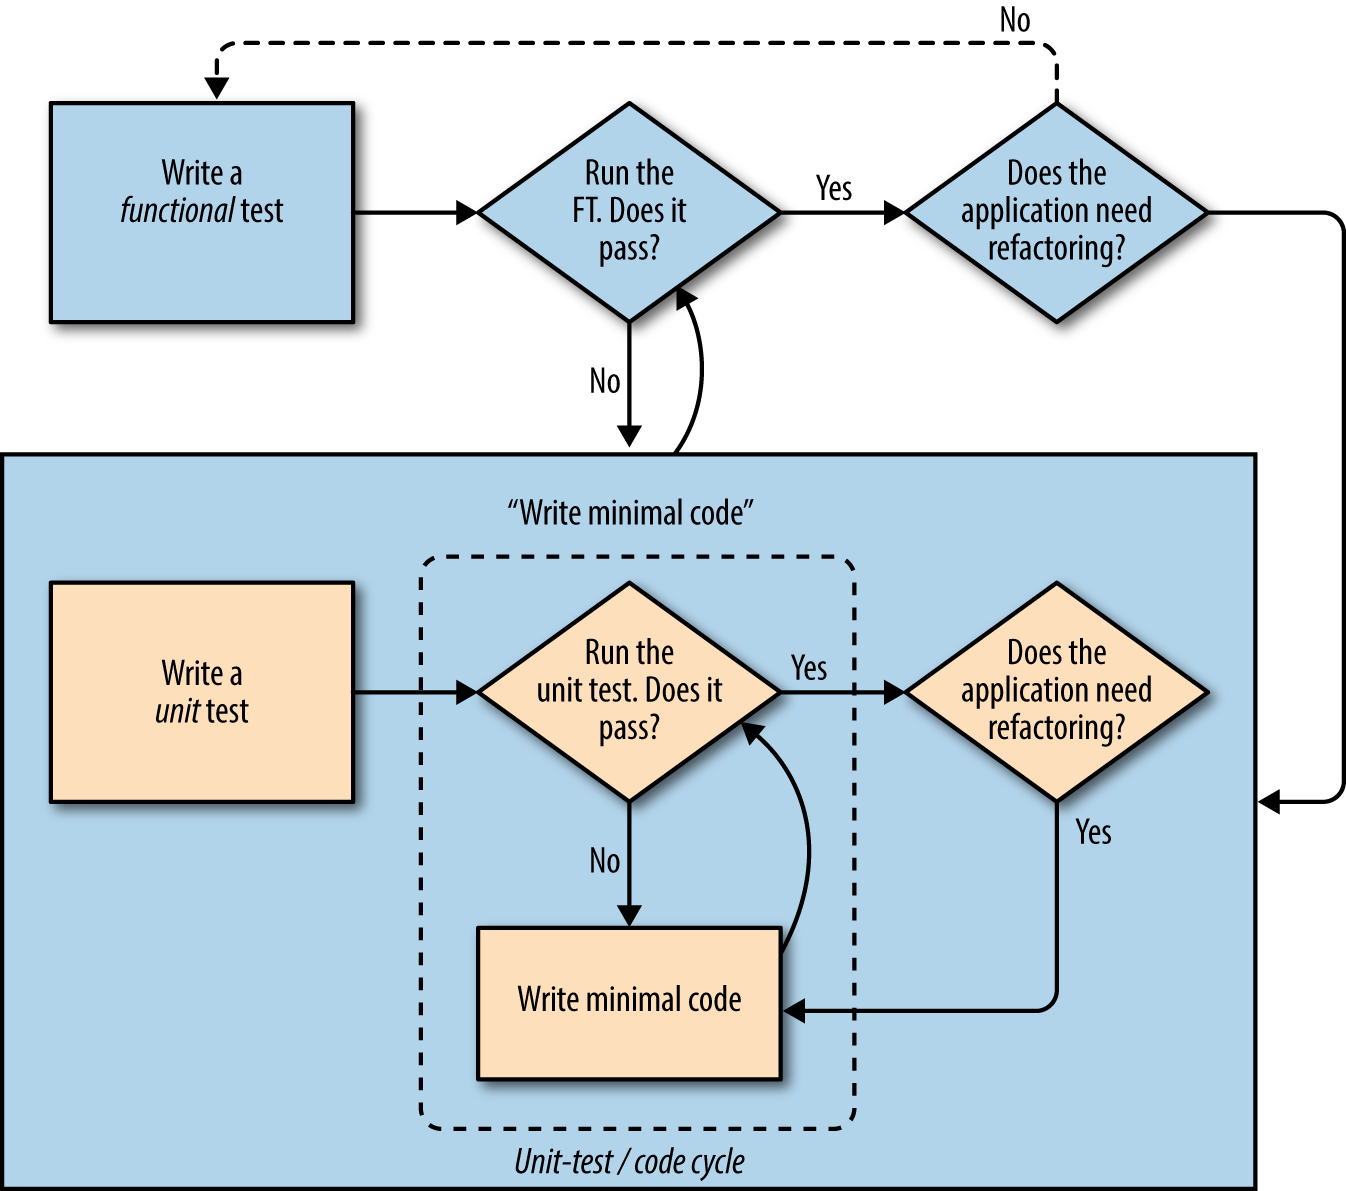 A flowchart showing functional tests as the overall cycle, and unit tests helping to code